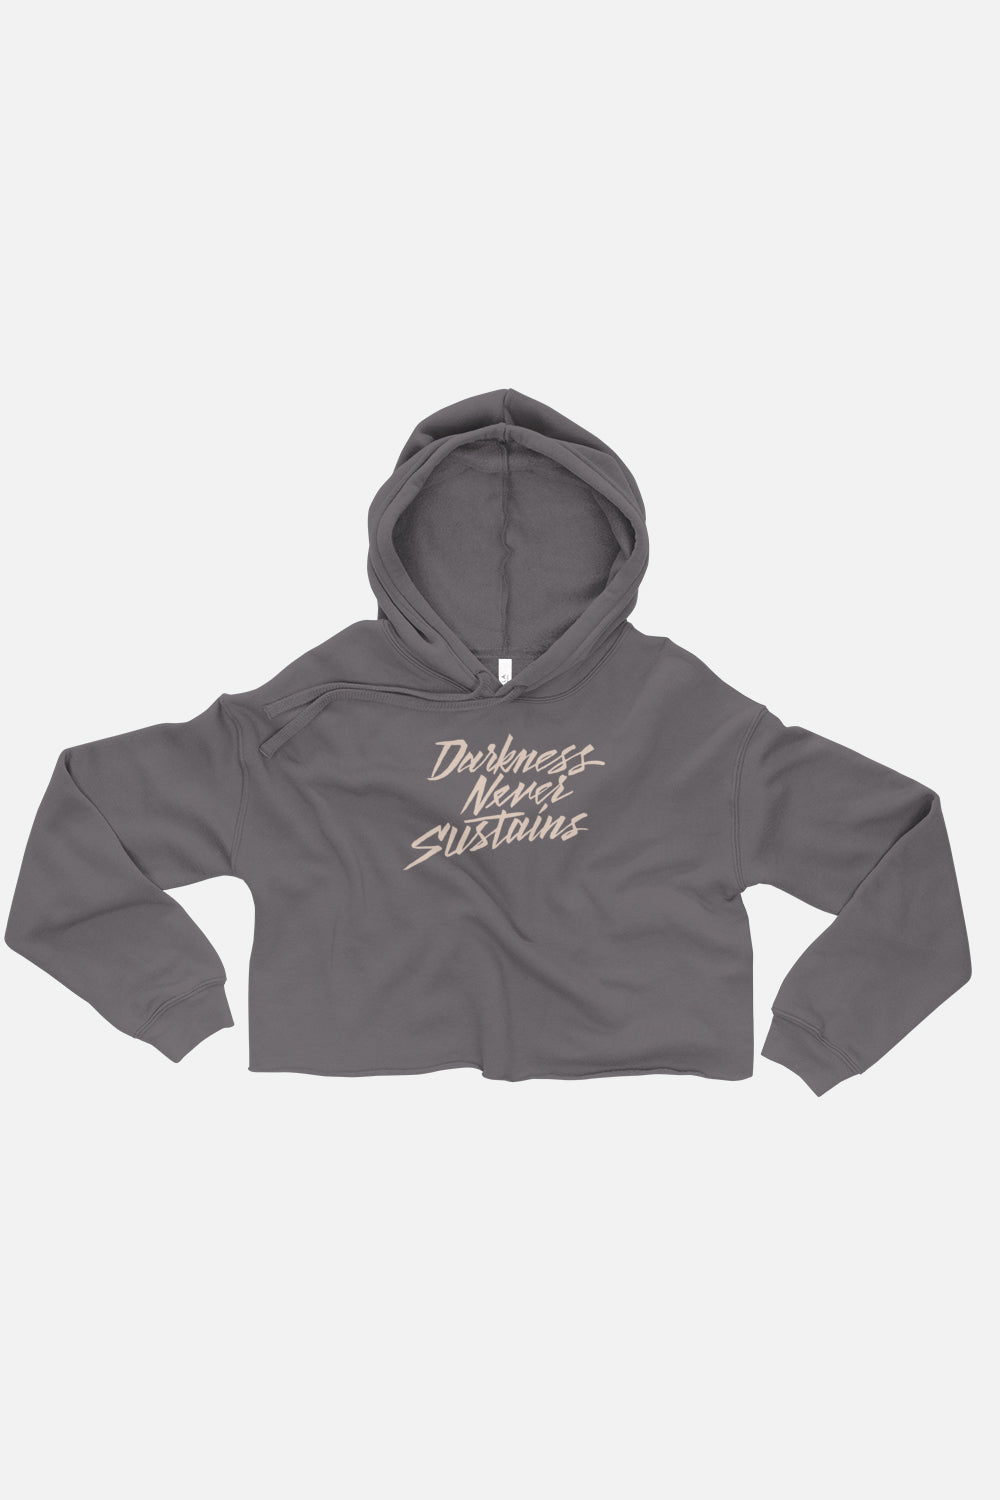 Darkness Never Sustains Fitted Crop Hoodie